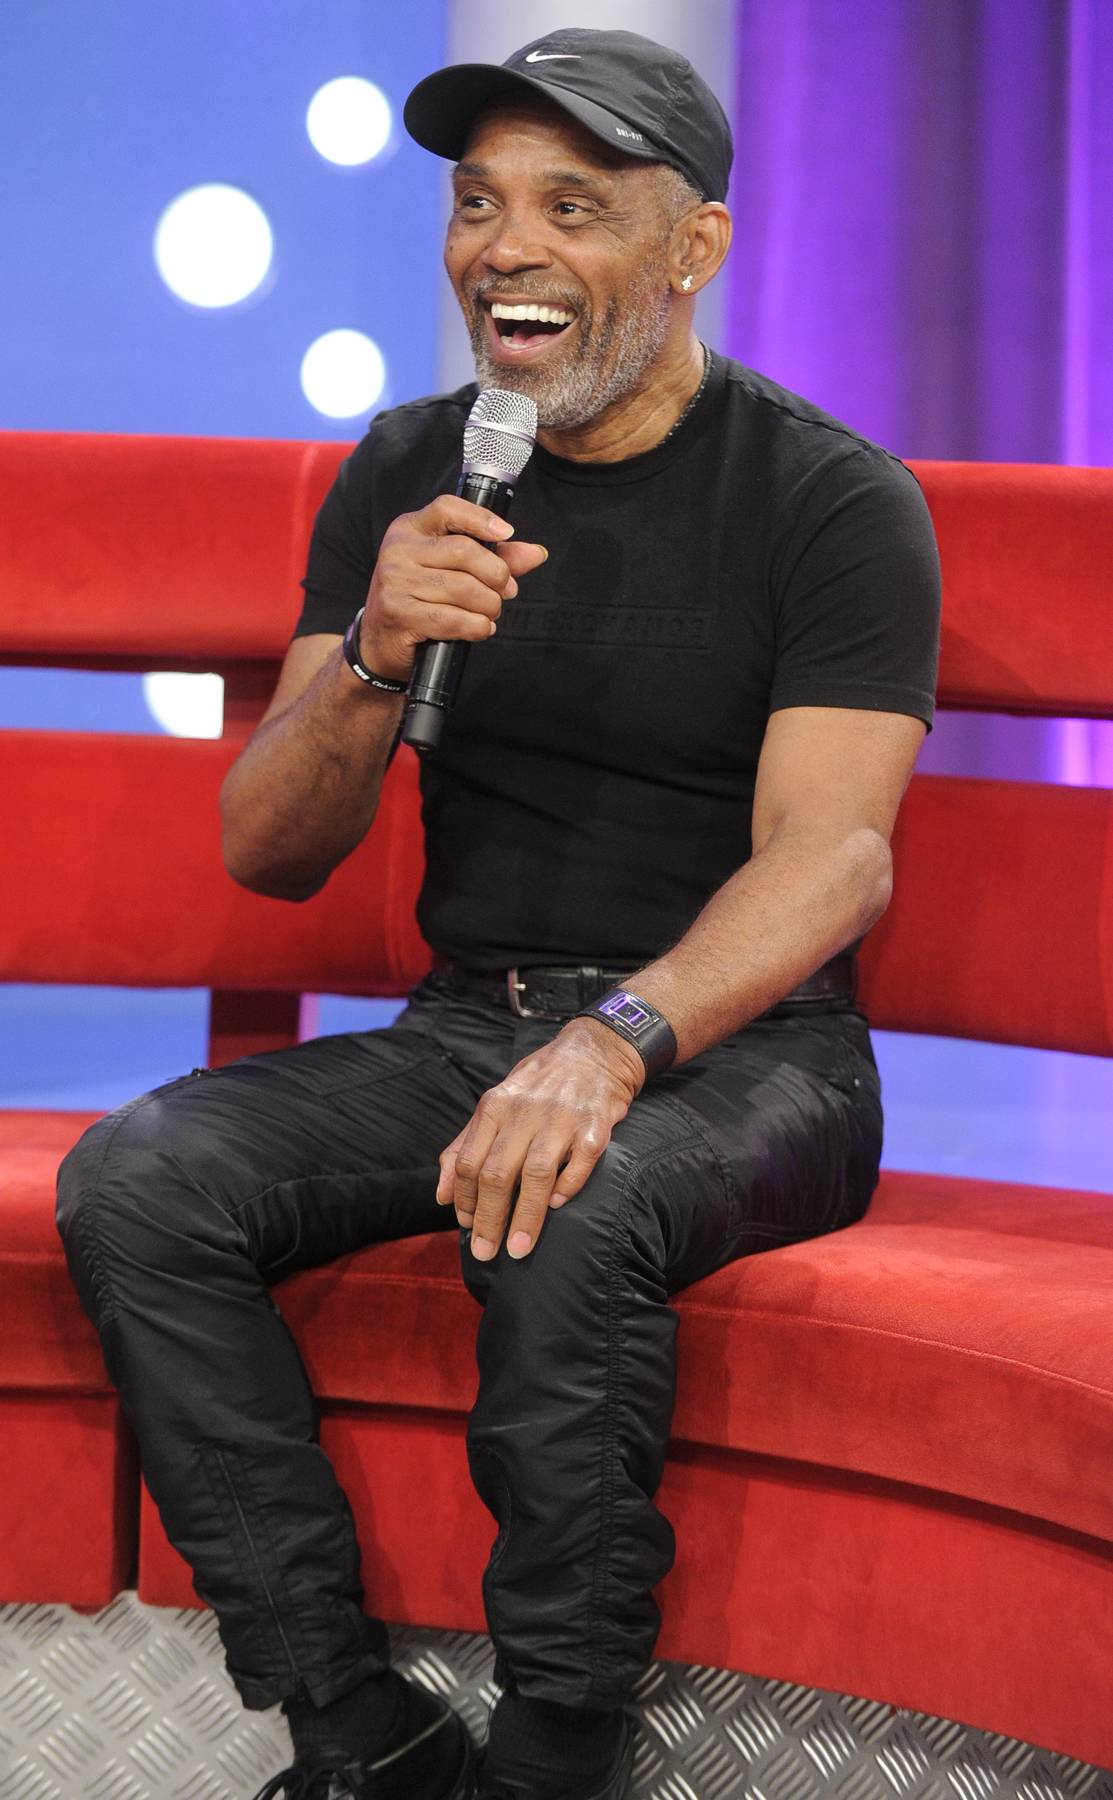 One Cool Dude - Frankie Beverly at 106 & Park, May 22, 2012. (Photo: John Ricard / BET)